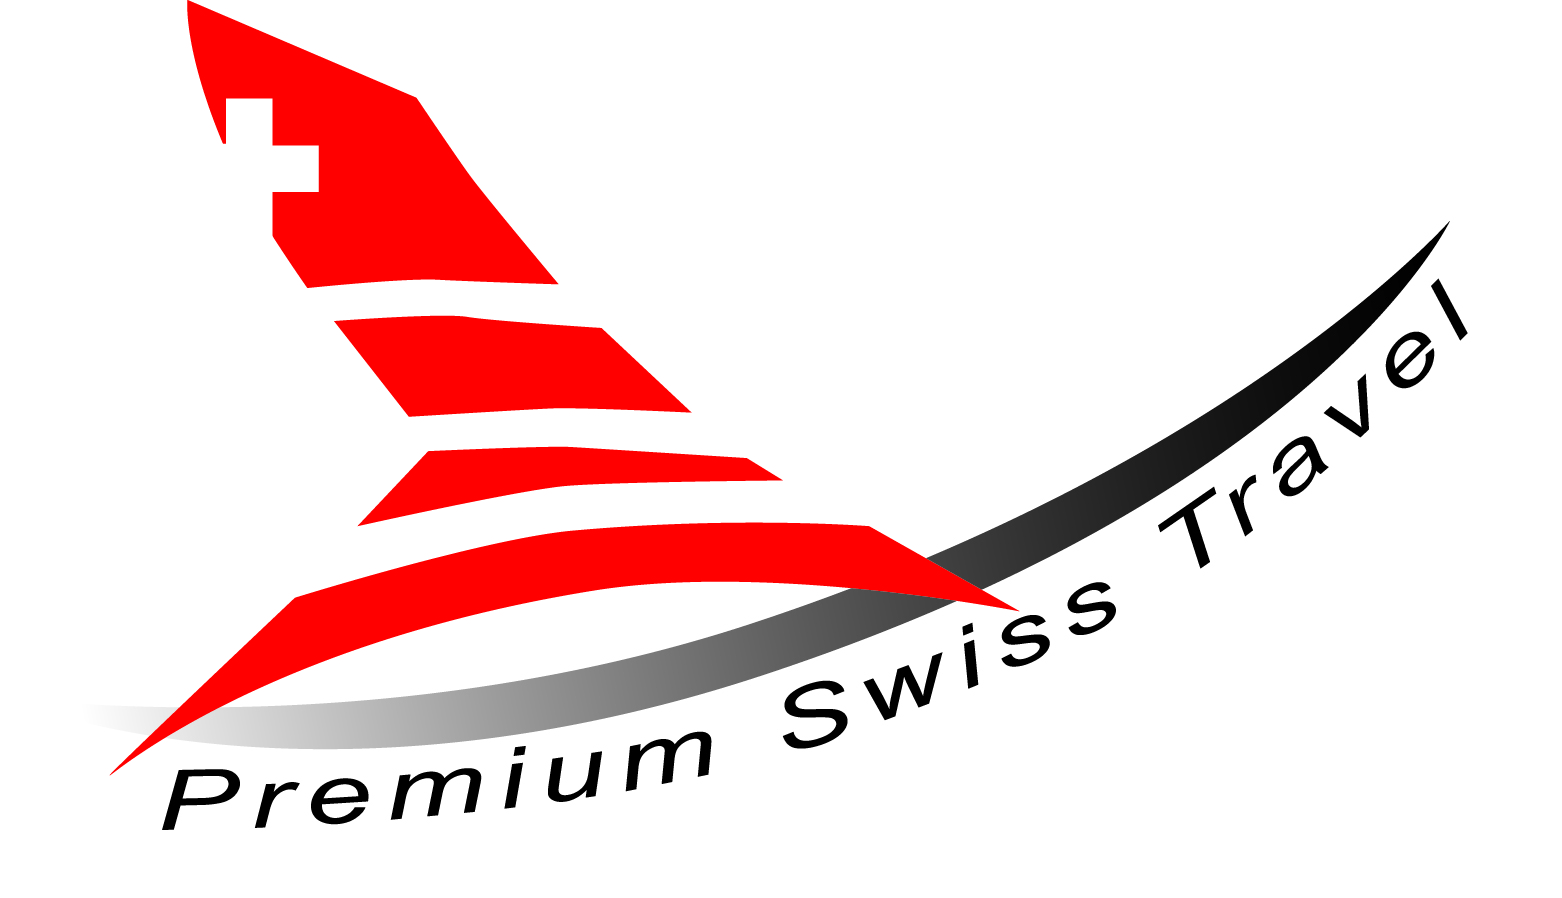 Premium Swiss Travel | Cruises grid layouts - Premium Swiss Travel